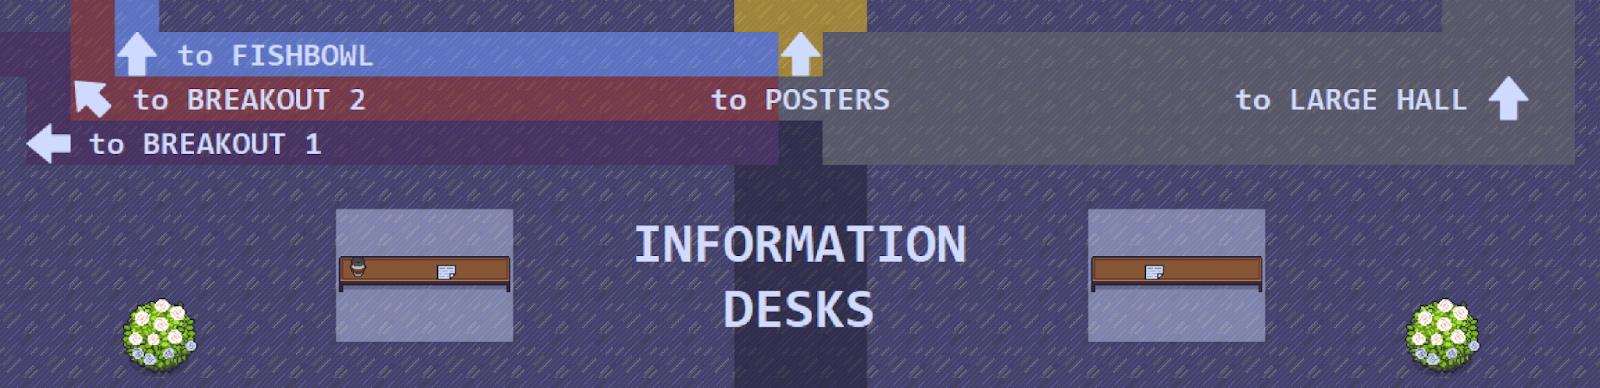 information desks in the LingComm21 Gather space: two tables in the lobby area